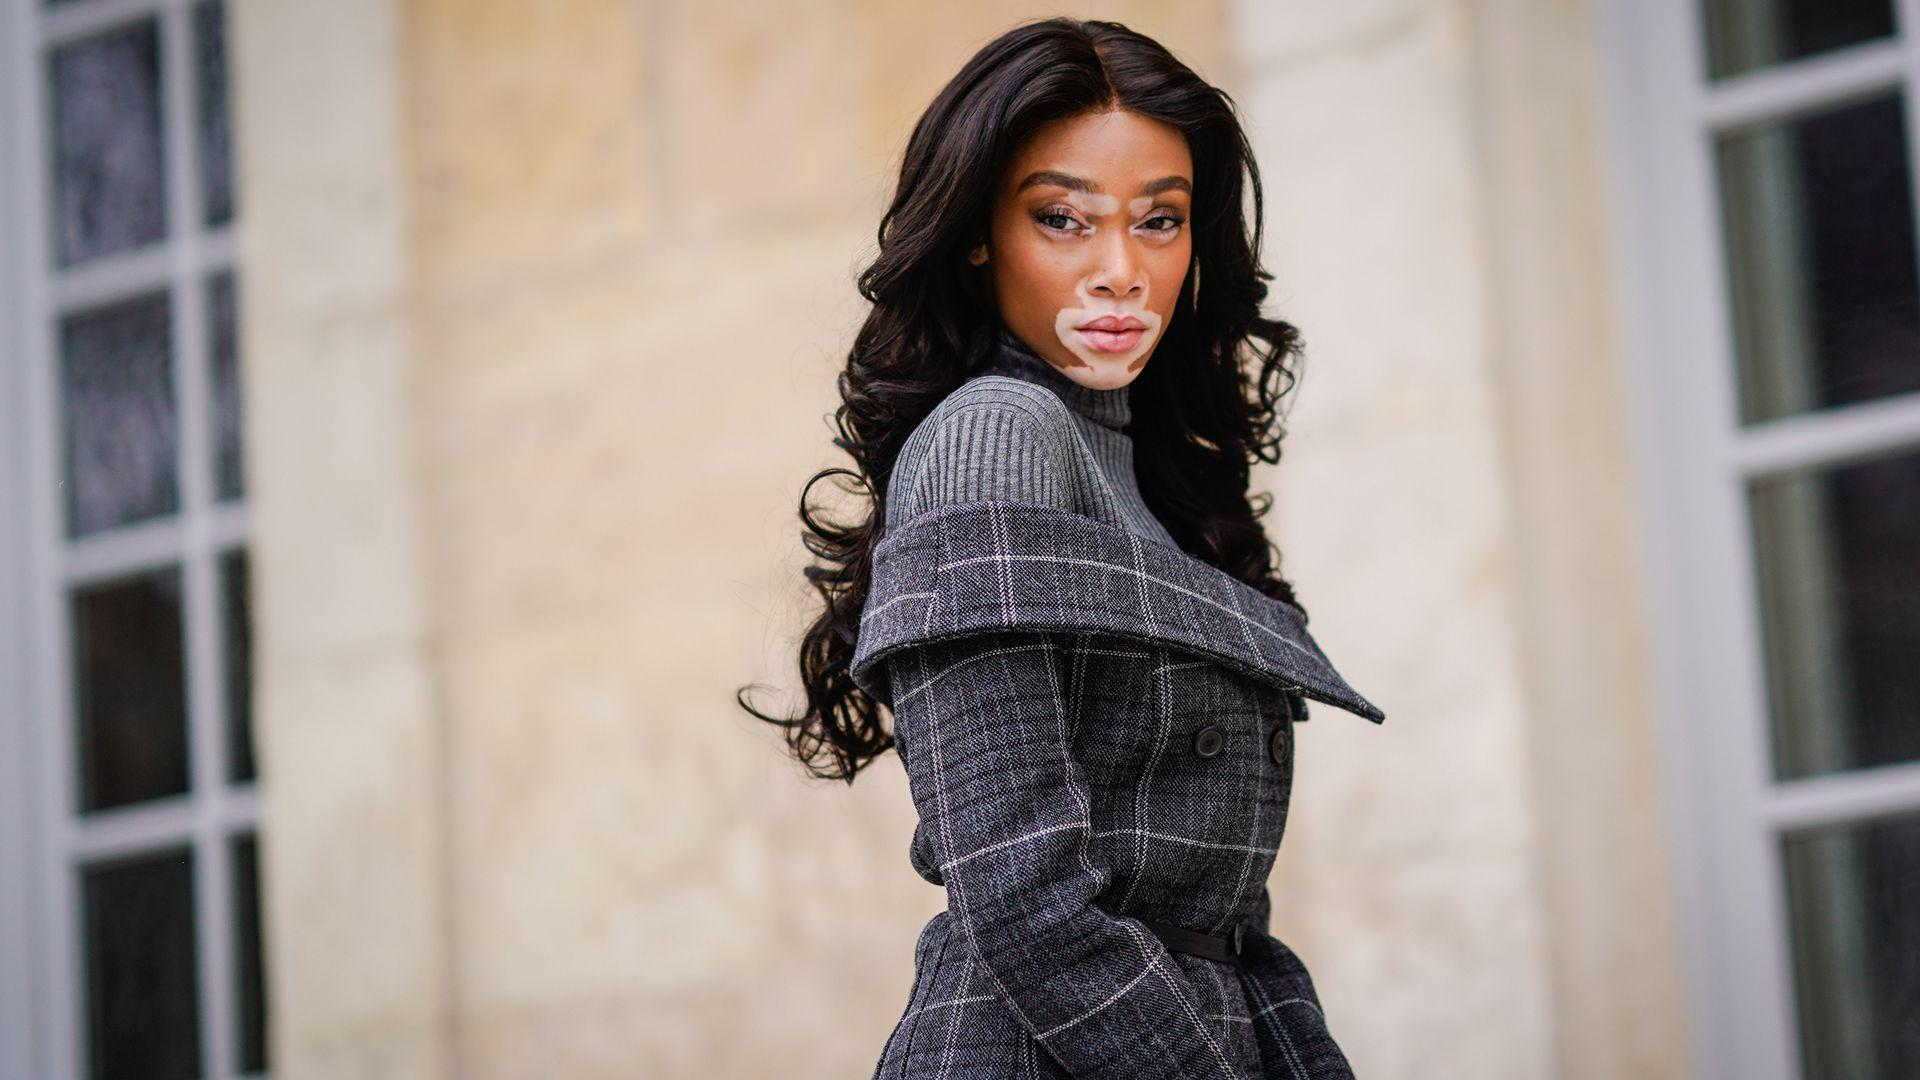 Winnie Harlow Slams Magazine for Vitiligo Comment | StyleCaster